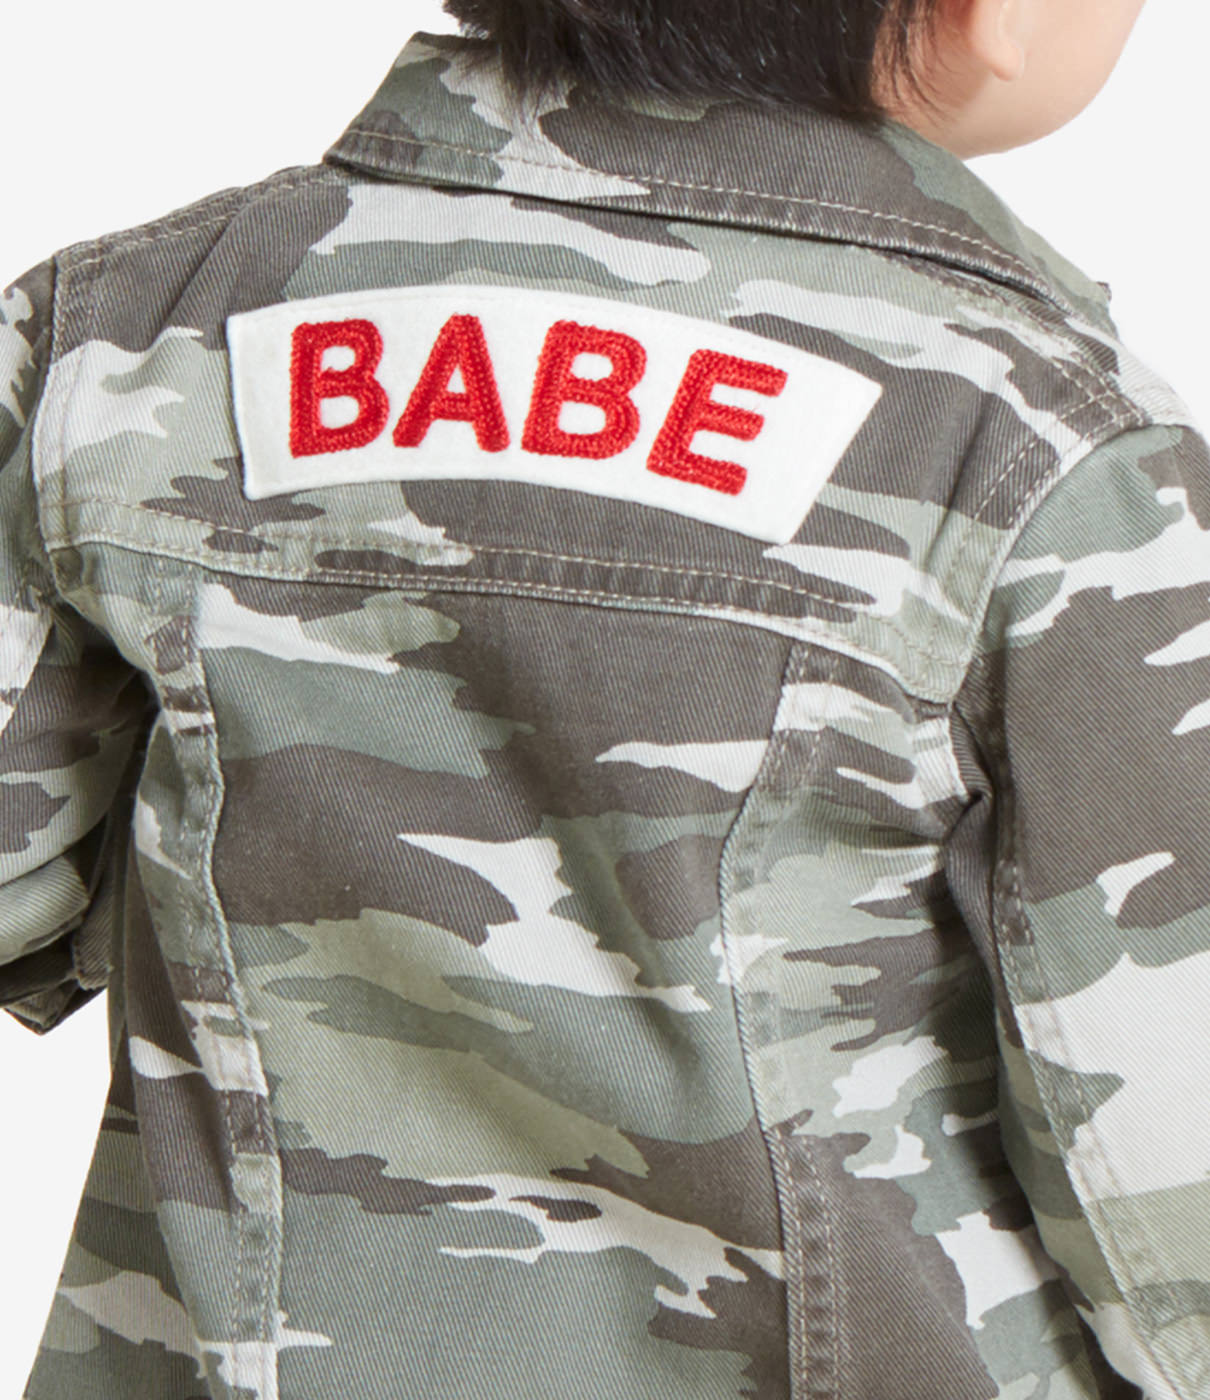 """IN THE DETAILSChain stitched """"Babe"""" felt patch on back."""